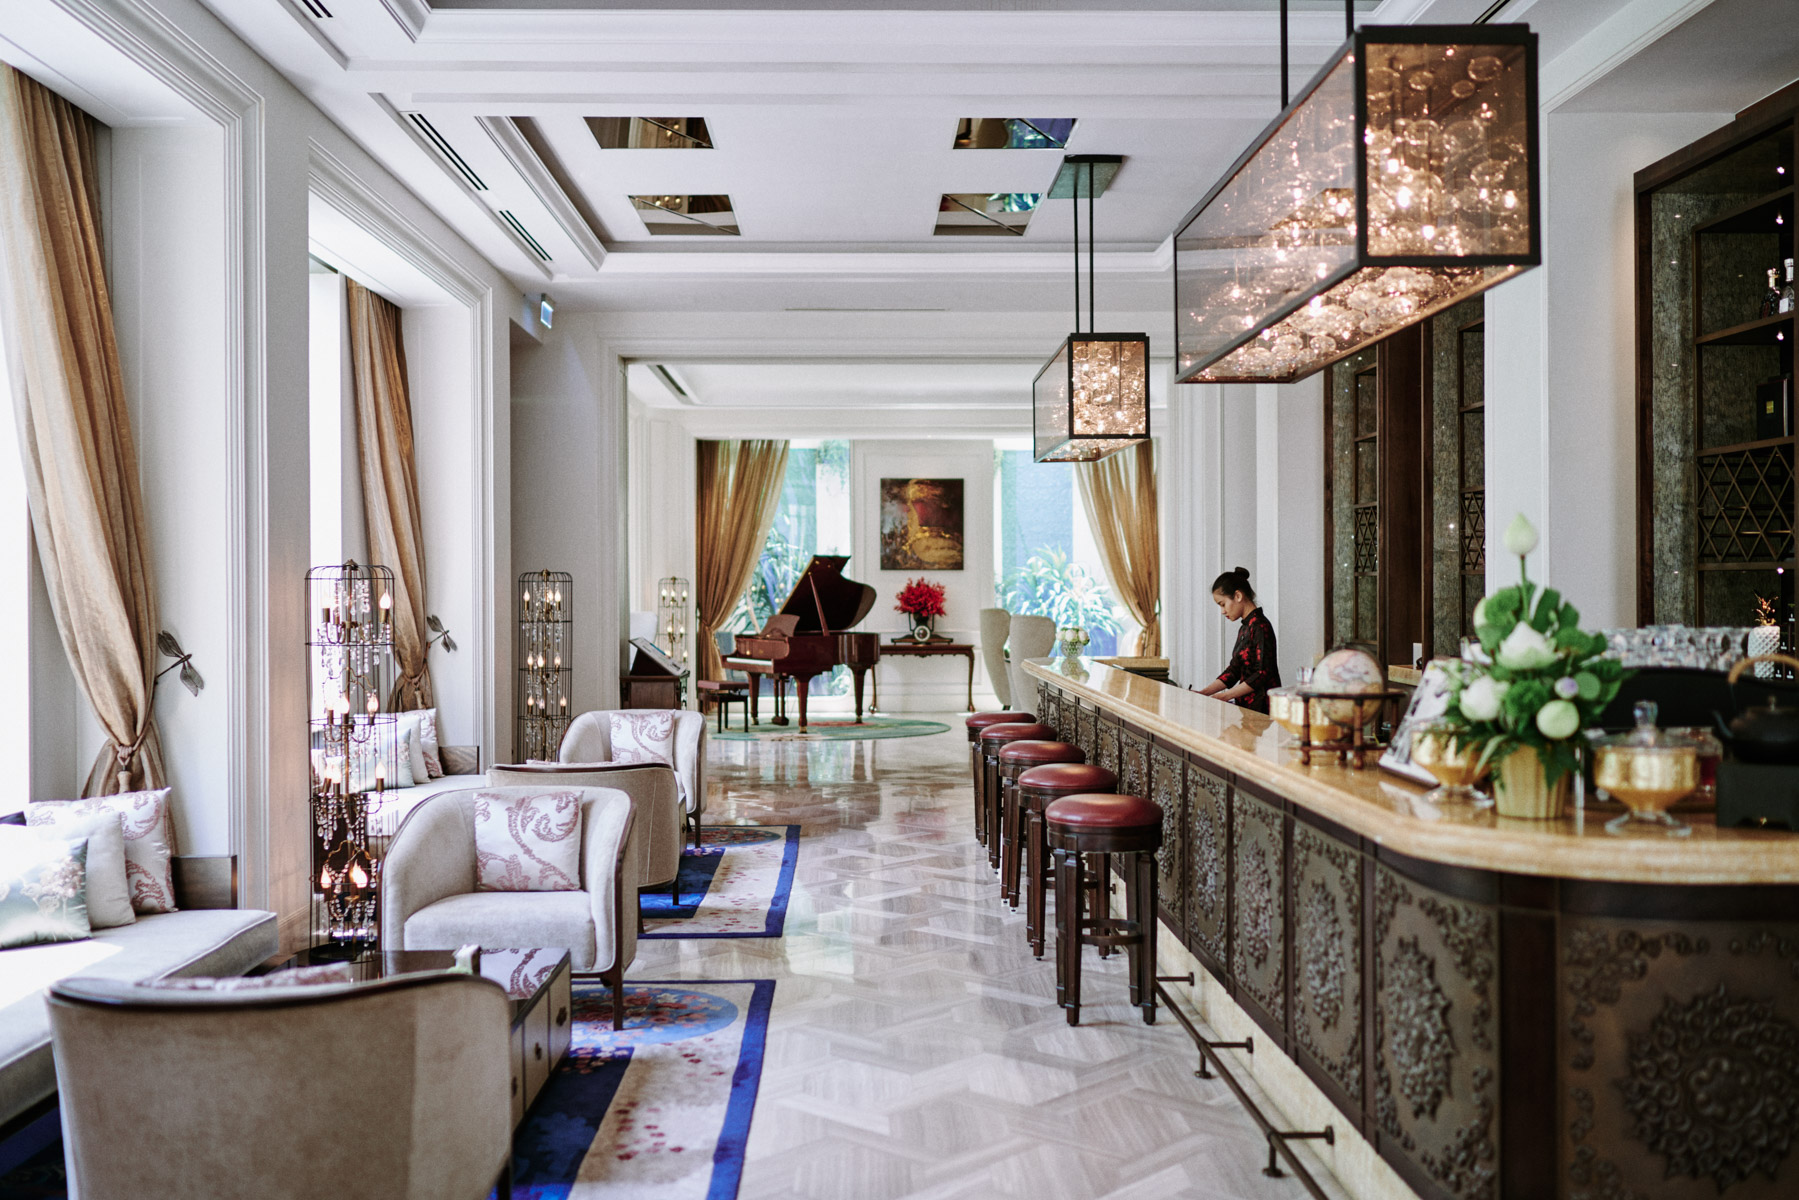 The Hotel des Arts in Ho Chi Minh City, Vietnam.